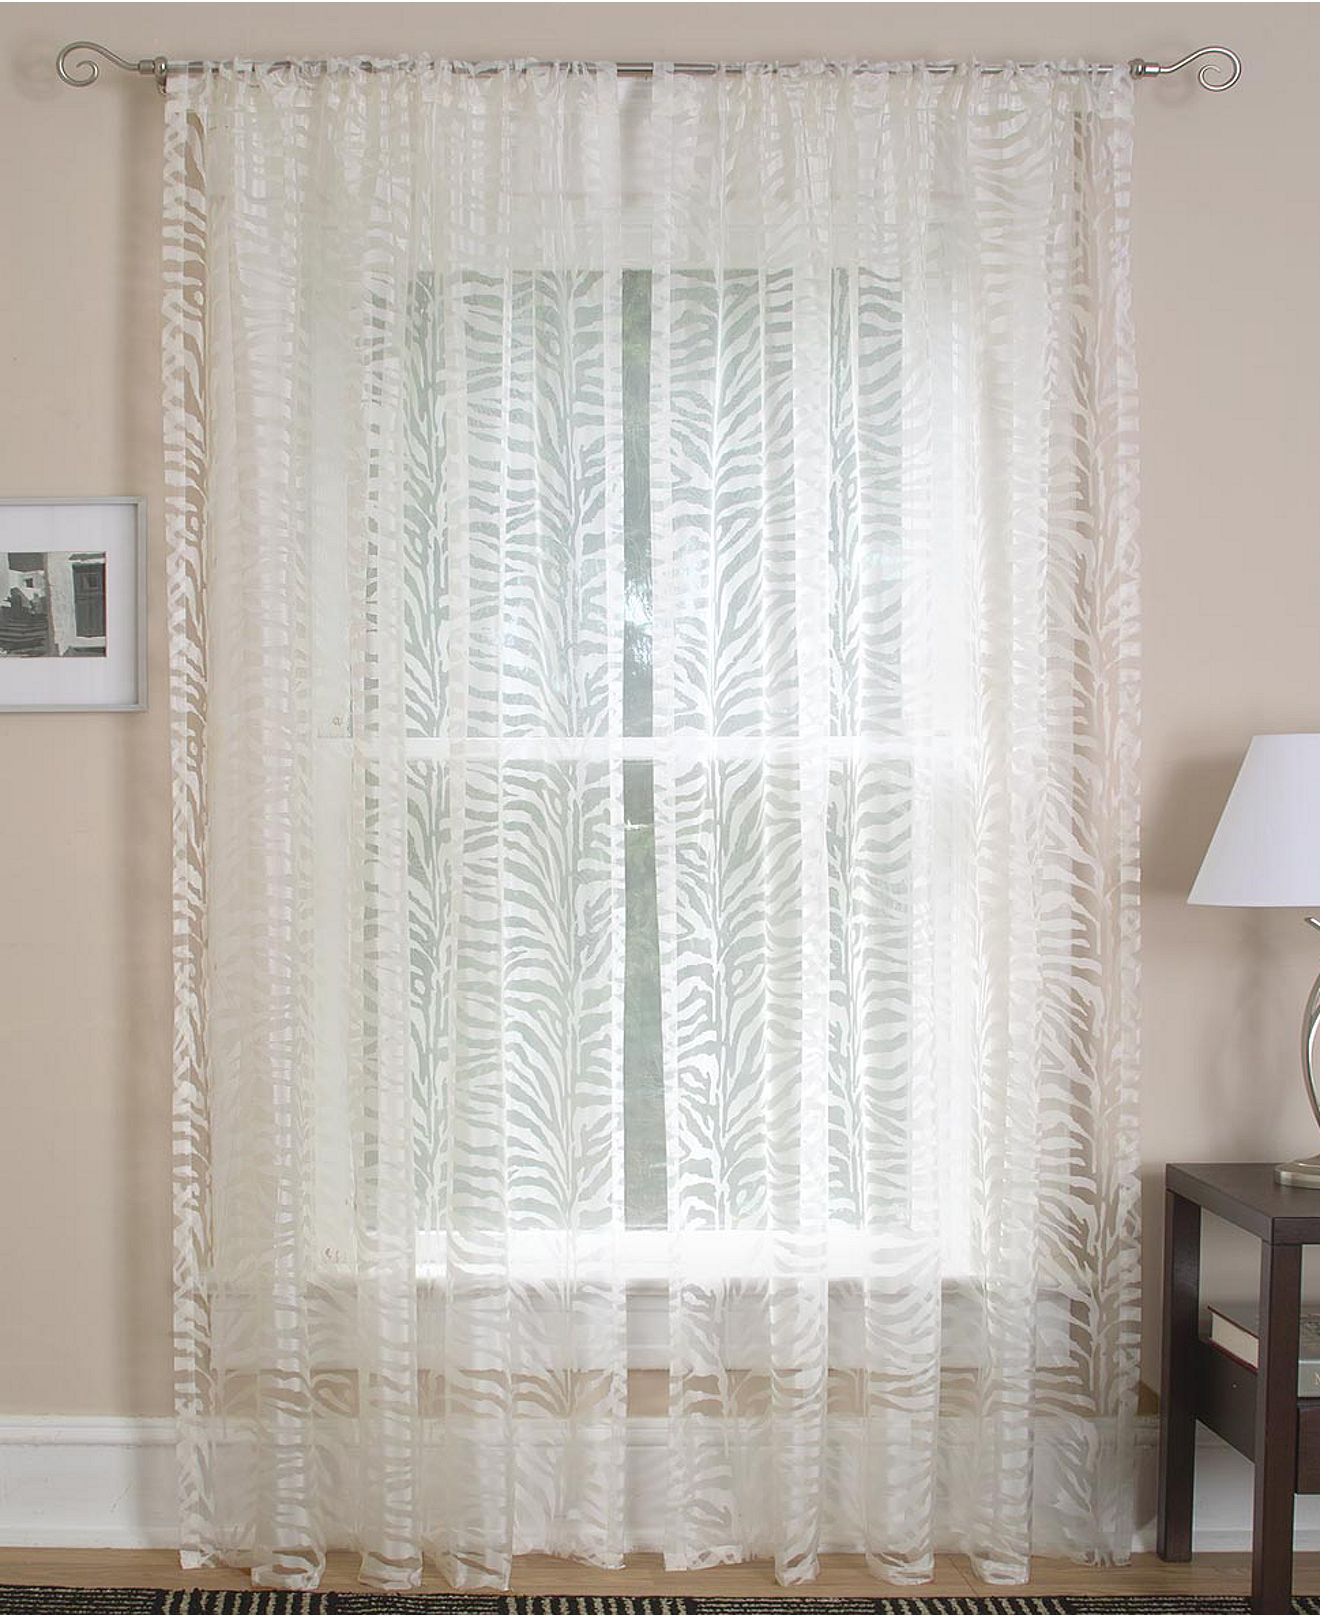 elrene window treatments, kenya collection - sheer curtains - for